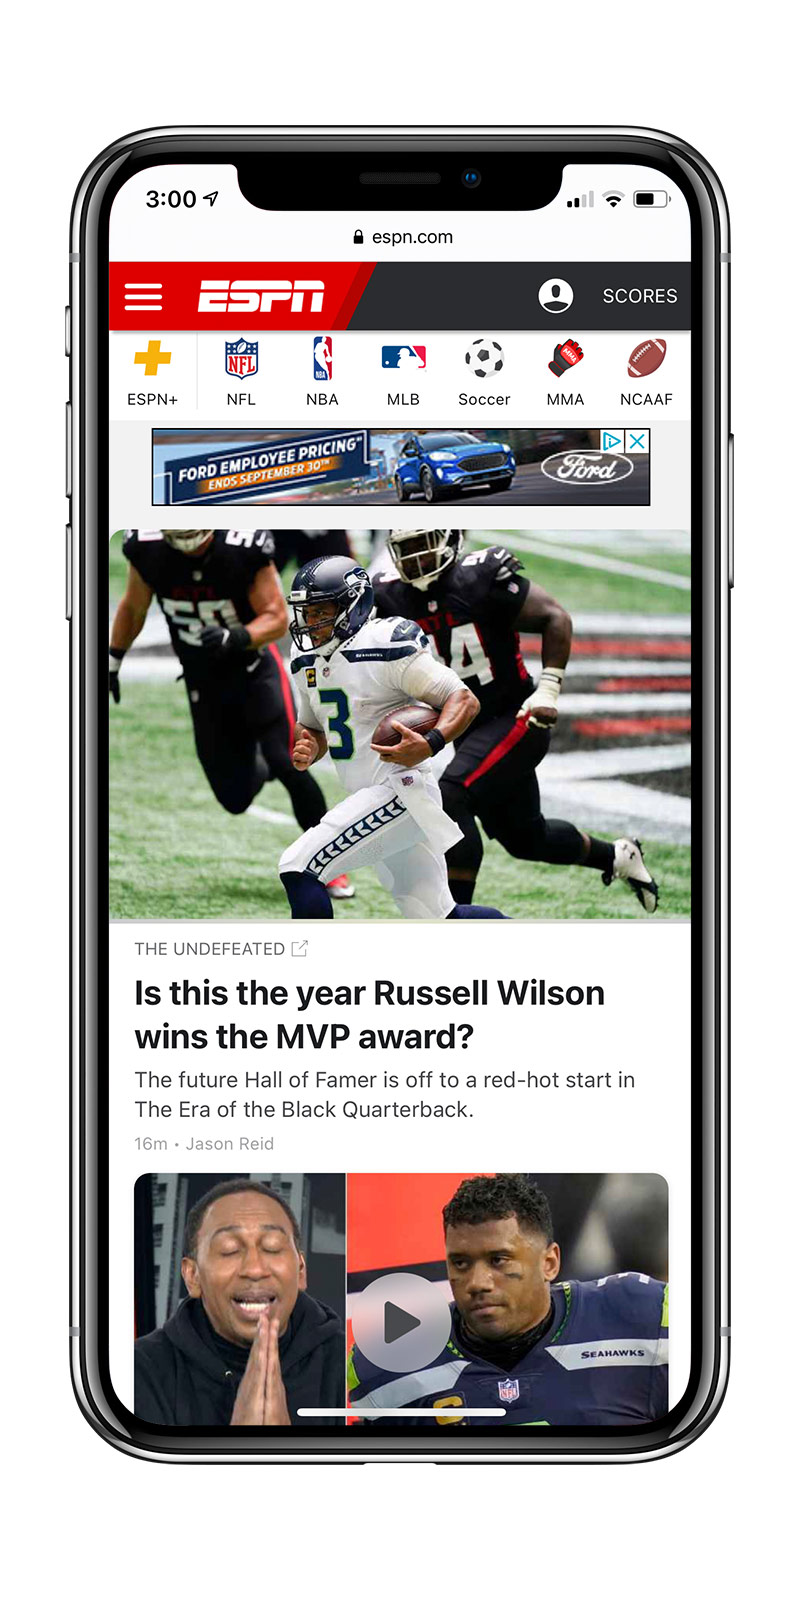 ESPN sports on mobile